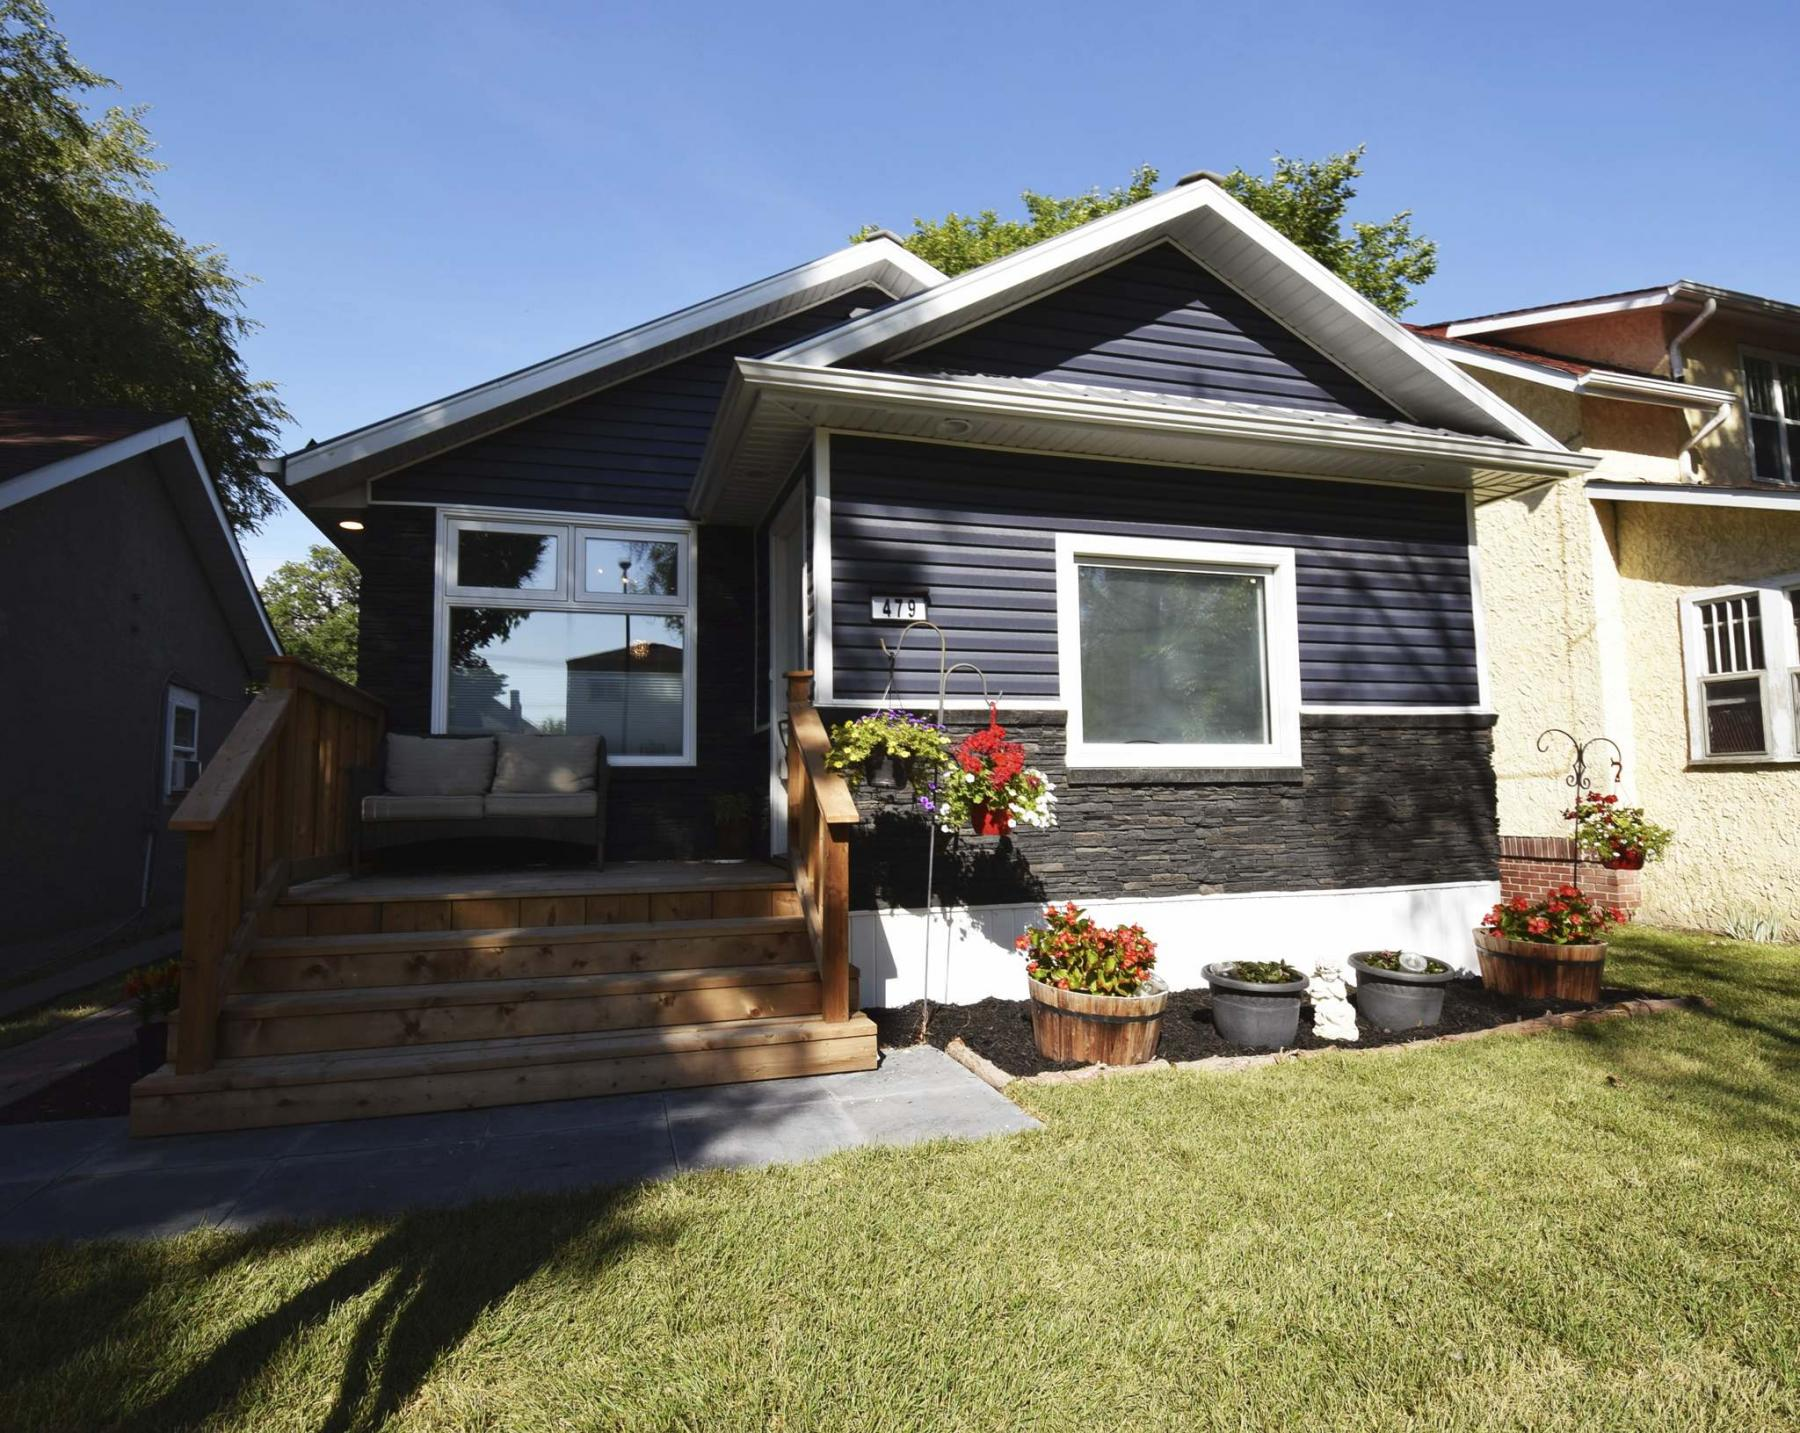 <p>Photos by Todd Lewys / Winnipeg Free Press</p><p>This charming three-bedroom bungalow in St. Boniface features a low-maintenance exterior with loads of curb appeal.</p></p>